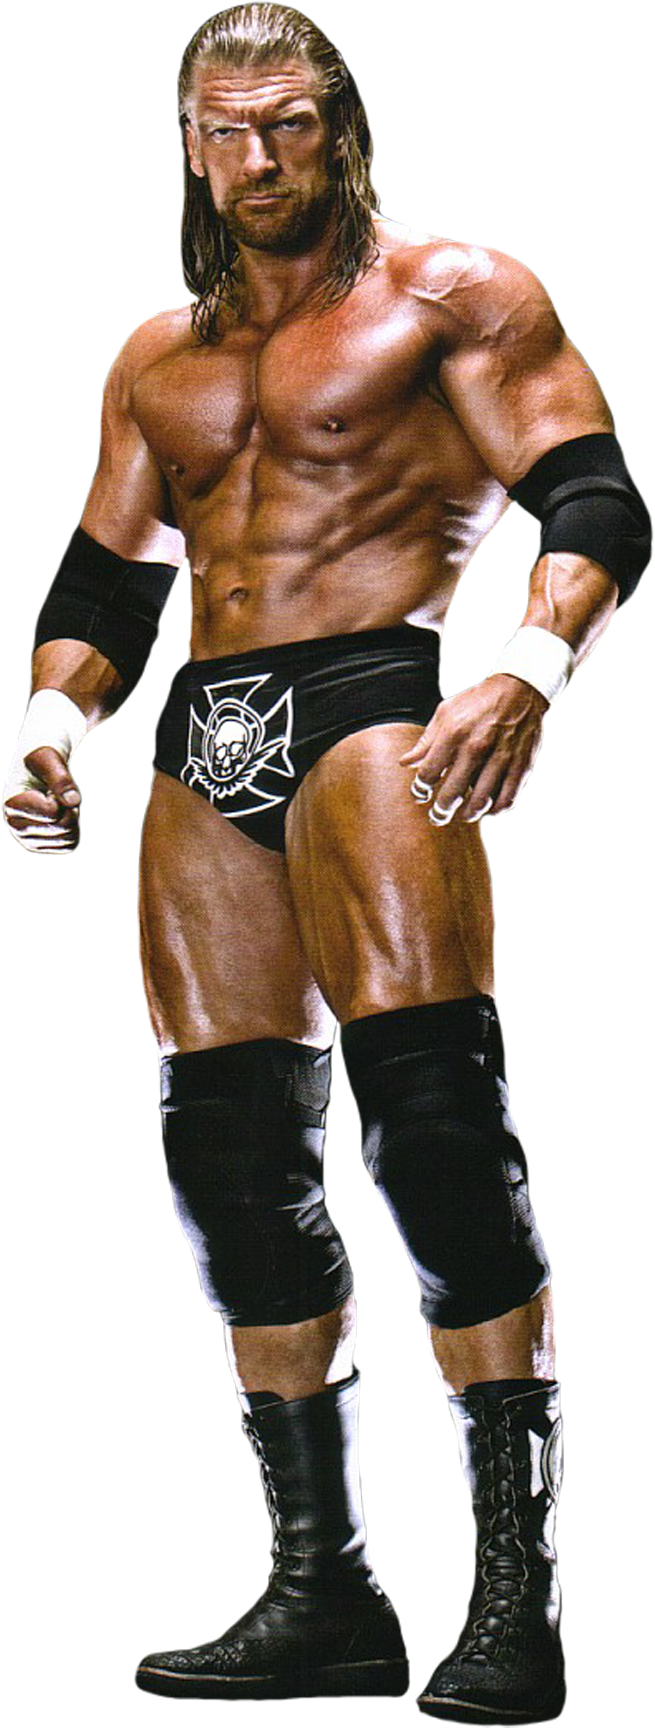 17 111126194456 Png Png Image 655 1728 Pixels Scaled 53 Wwe Tag Teams Triple H Wwe Champions